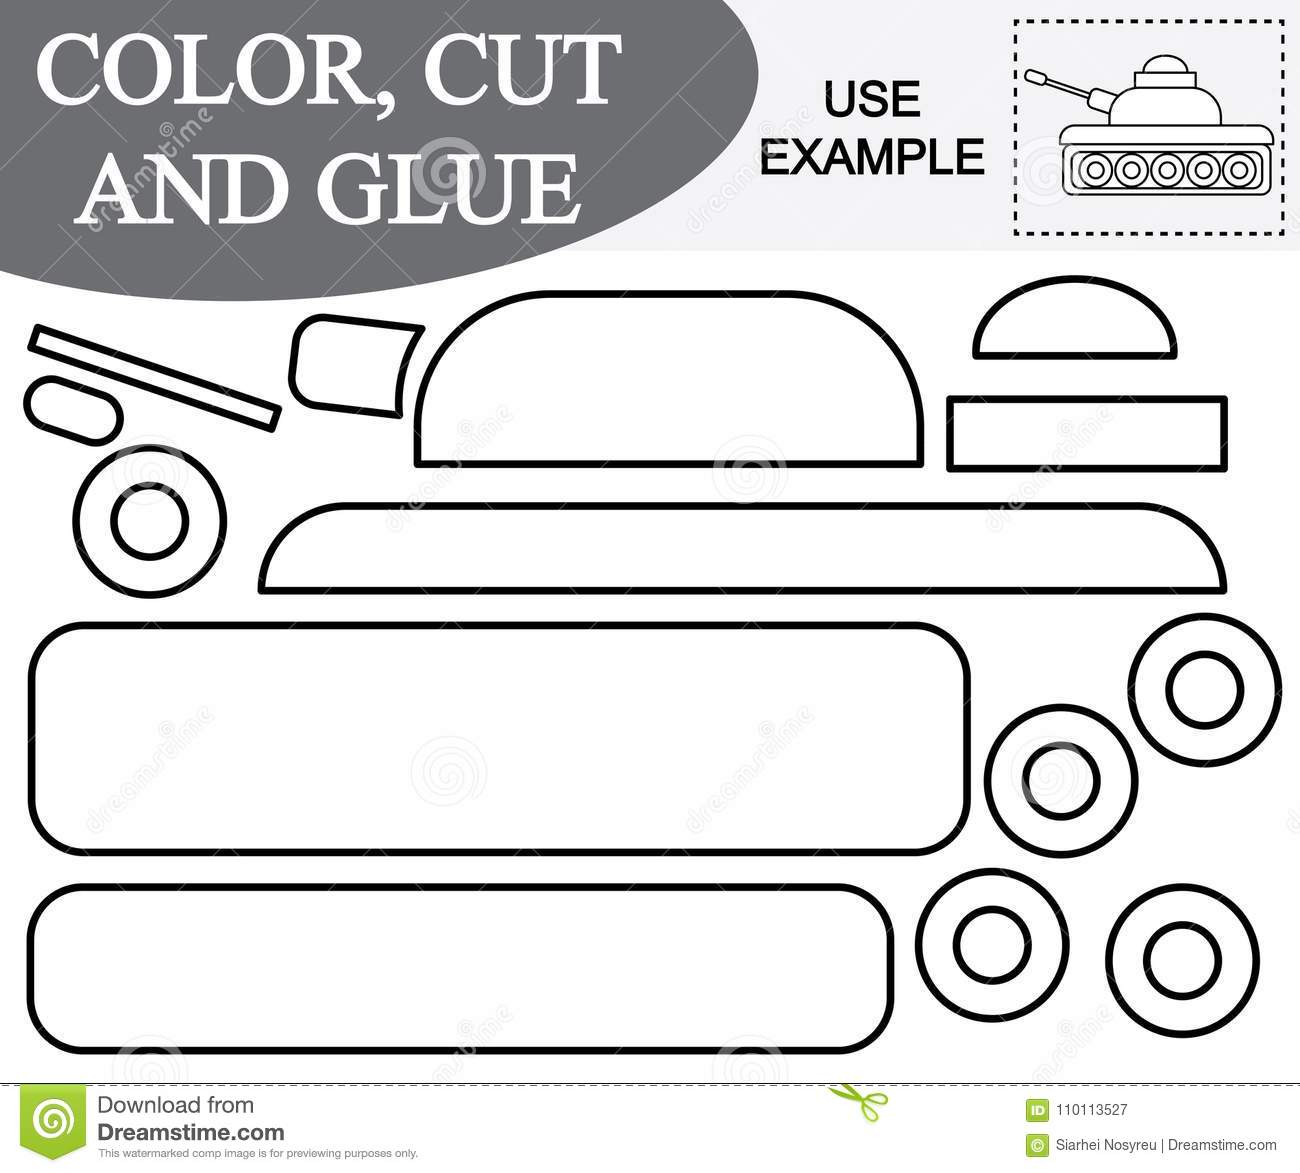 Color Cut And Glue To Create The Image Of Tank Transport